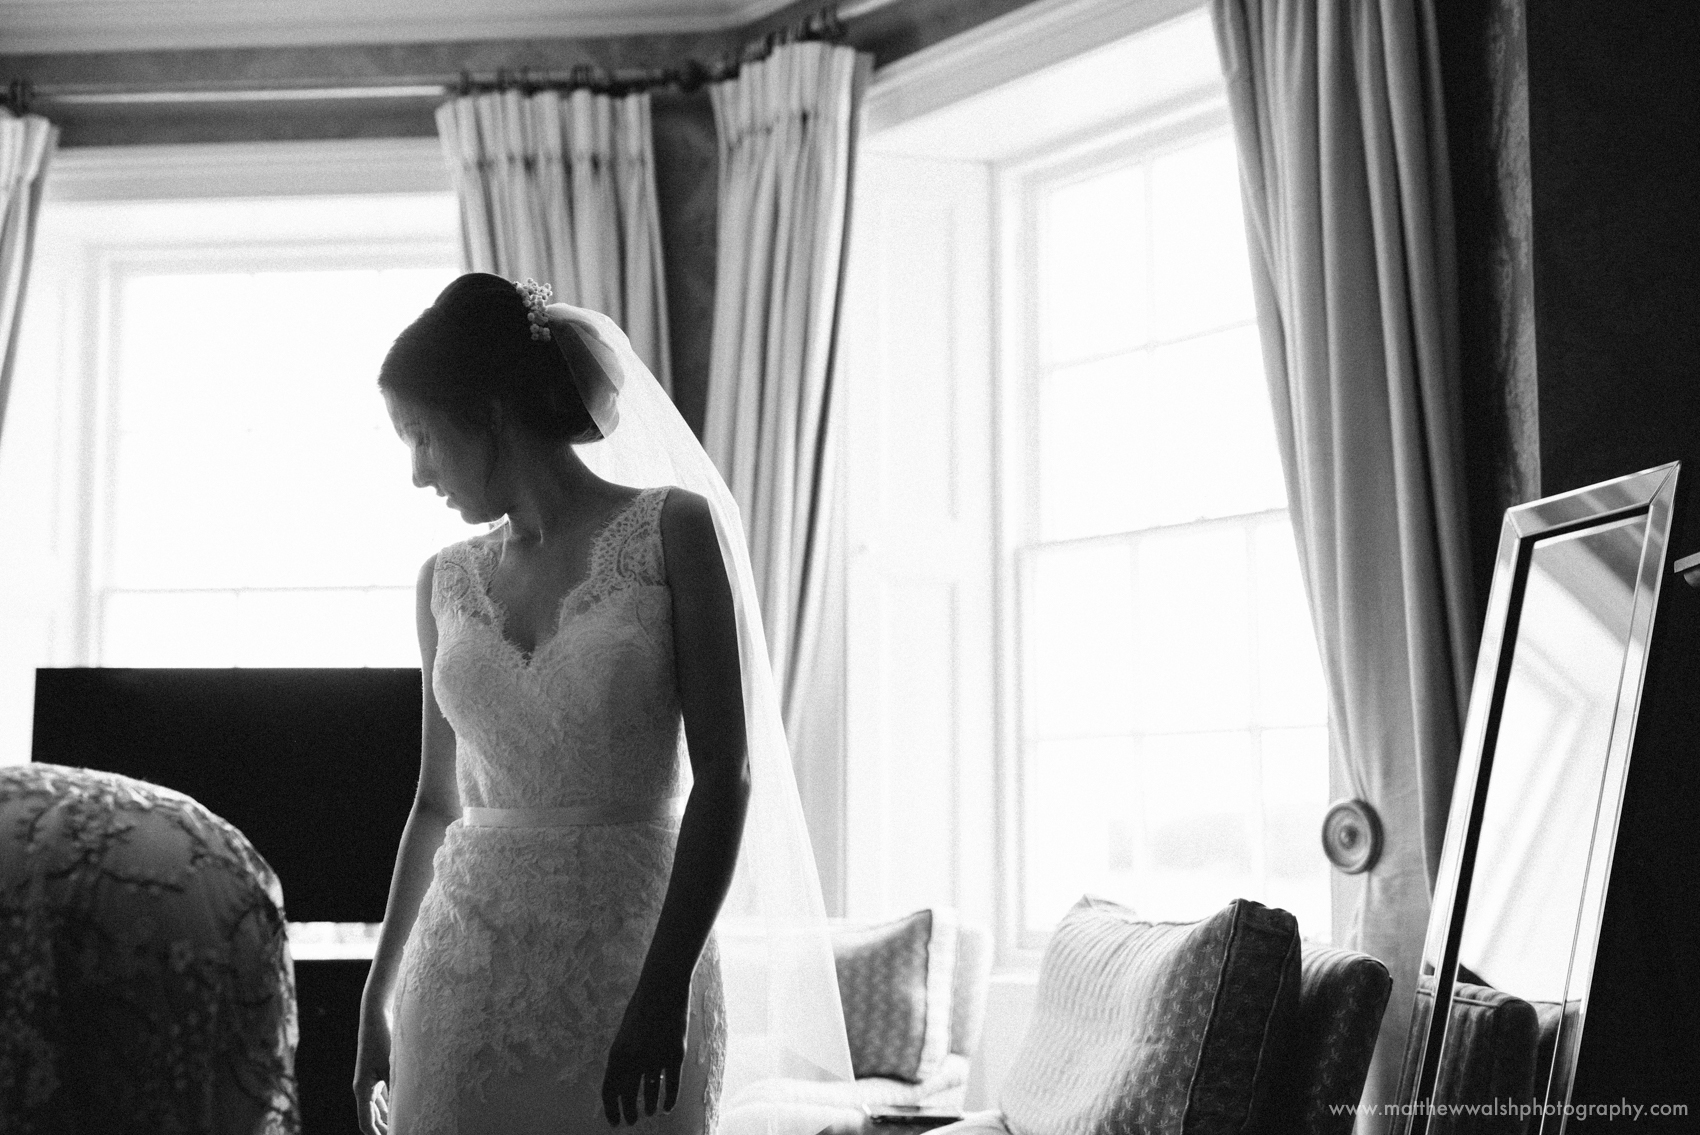 The bride in her perfect wedding dress